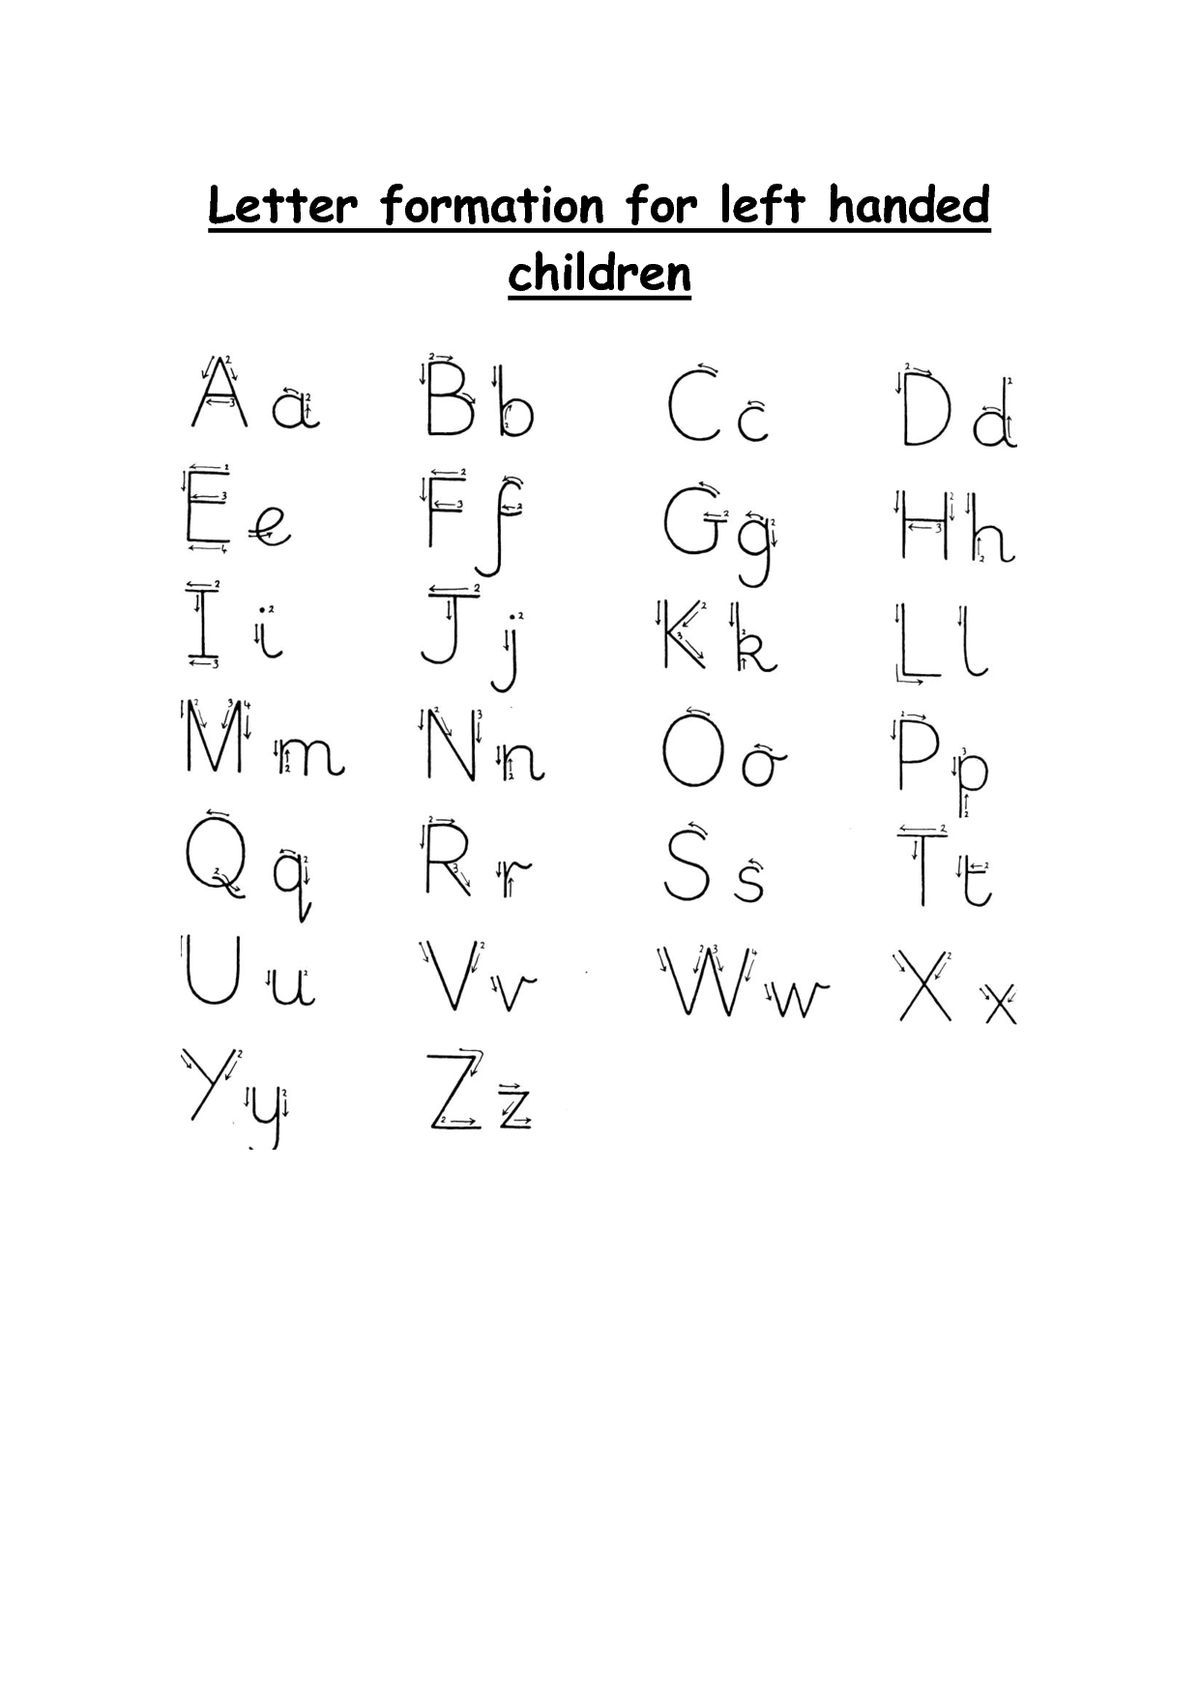 worksheet Left Handed Letter Formation Worksheets Free left handed letter formation pinterest formation